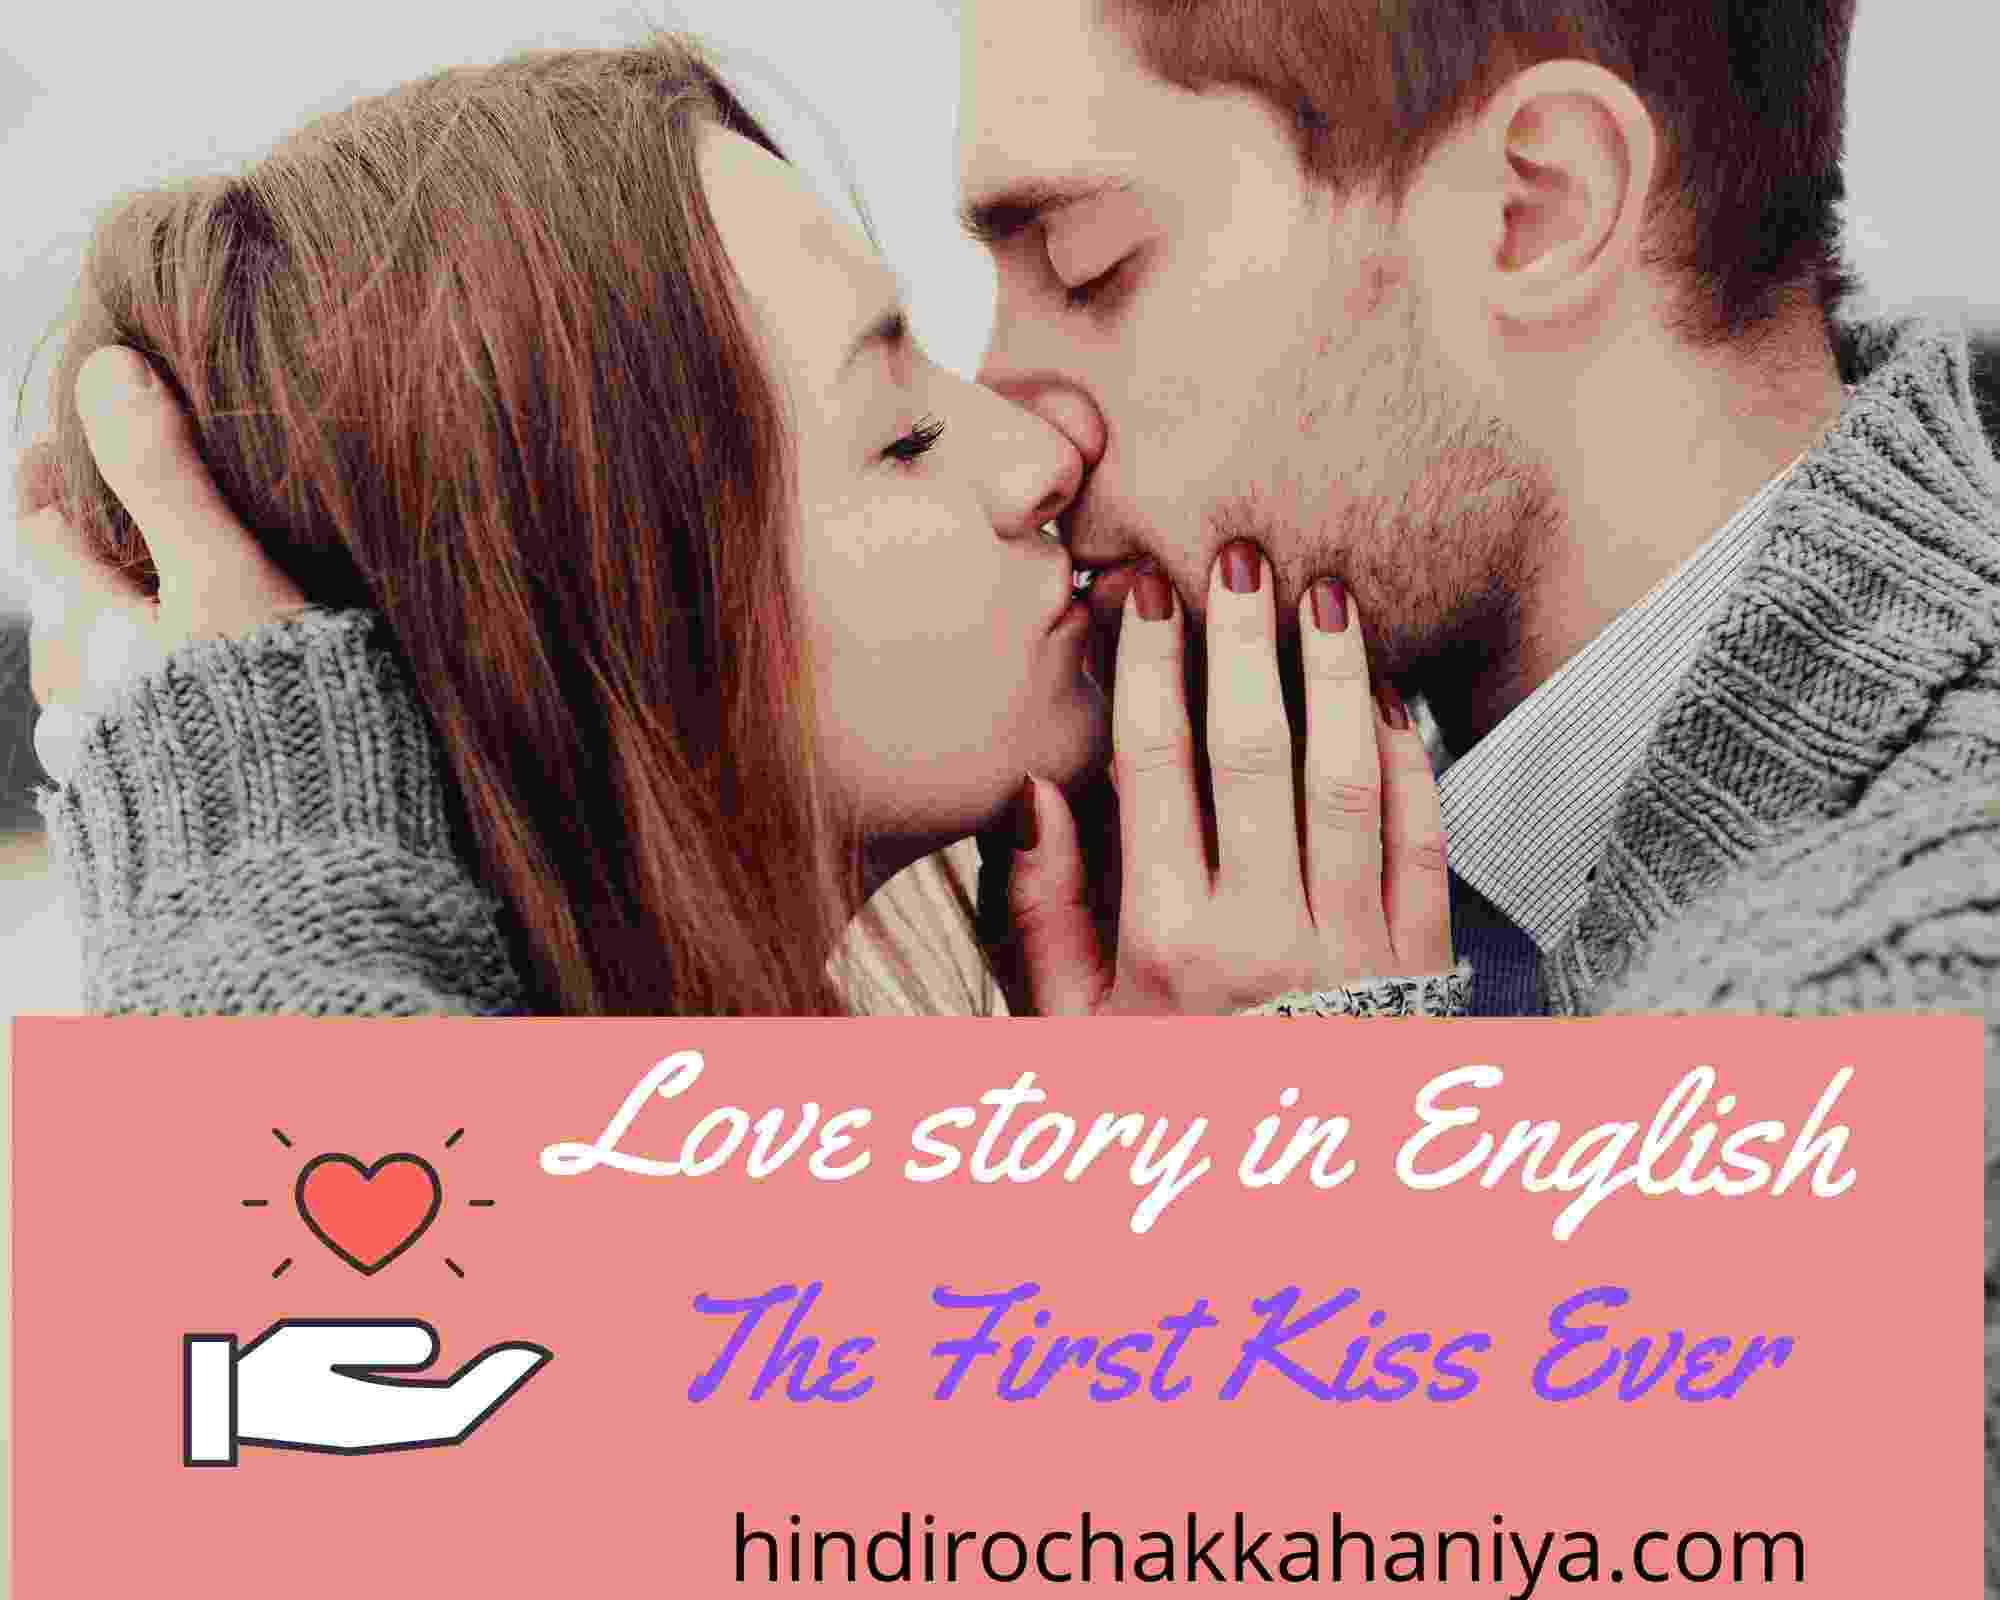 Love story in English